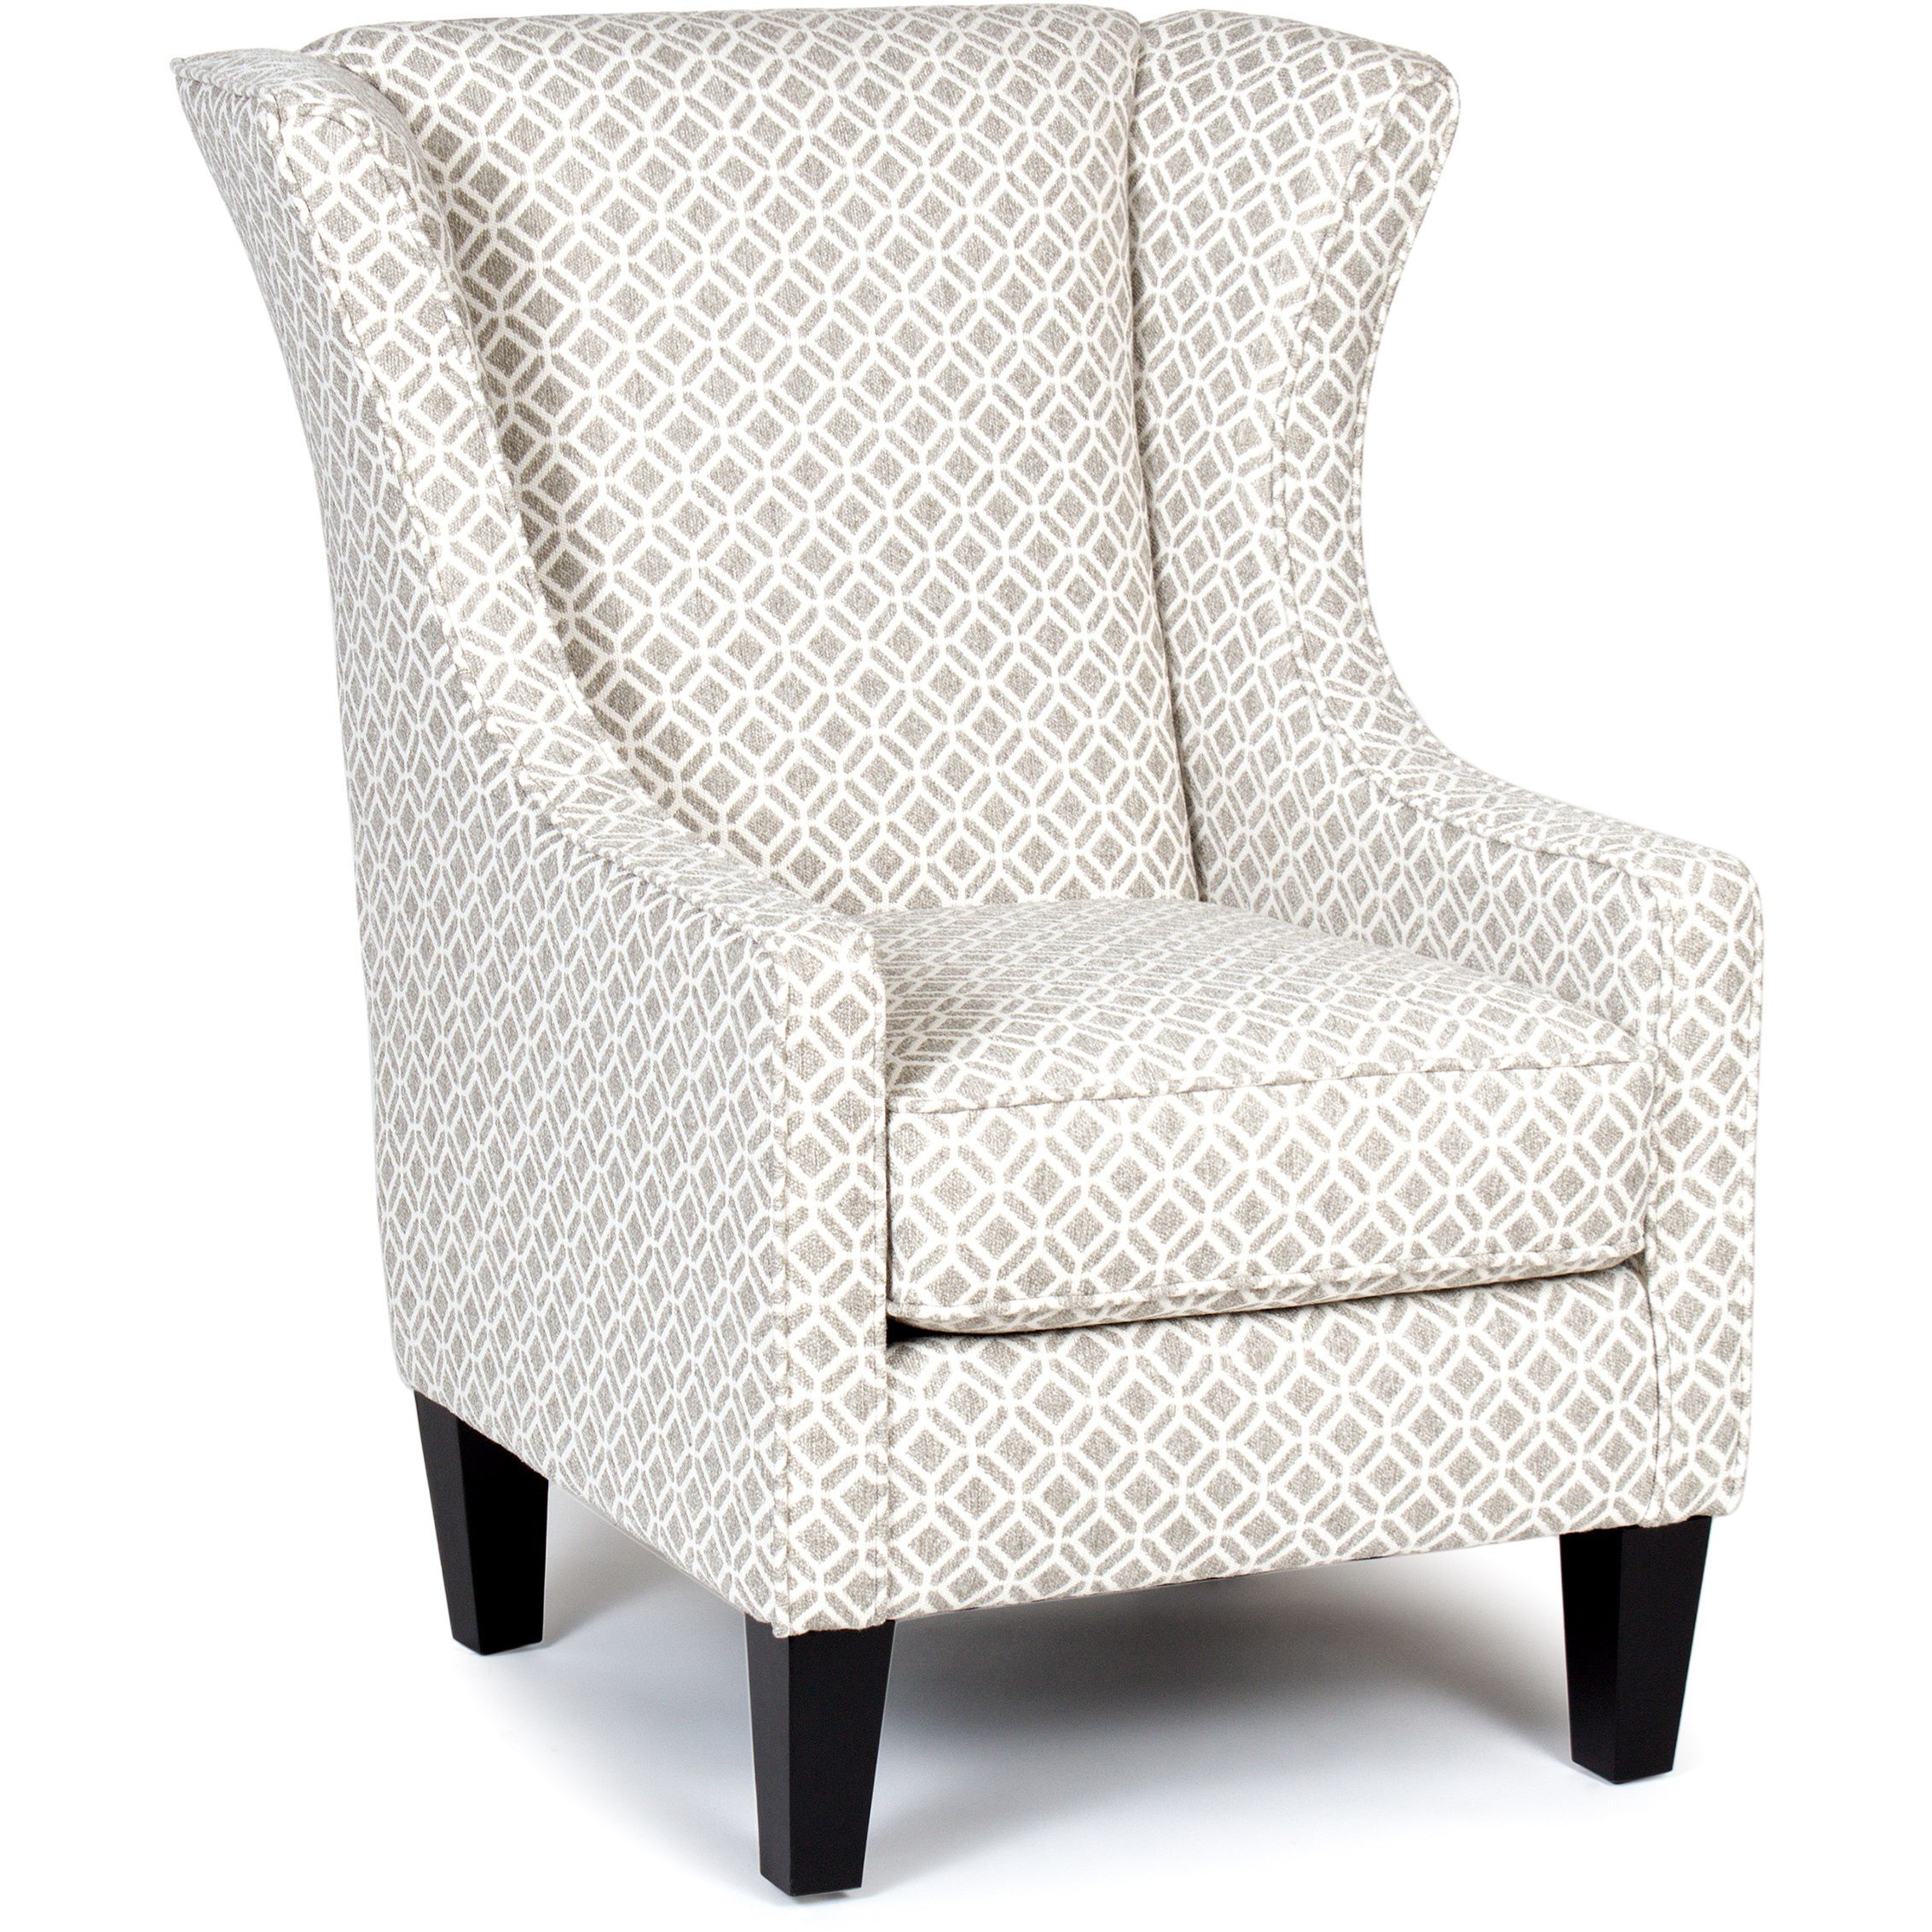 Chairs America Accent Chairs And Ottomans Wing Chair   Item Number:  1460 DelRayLinen